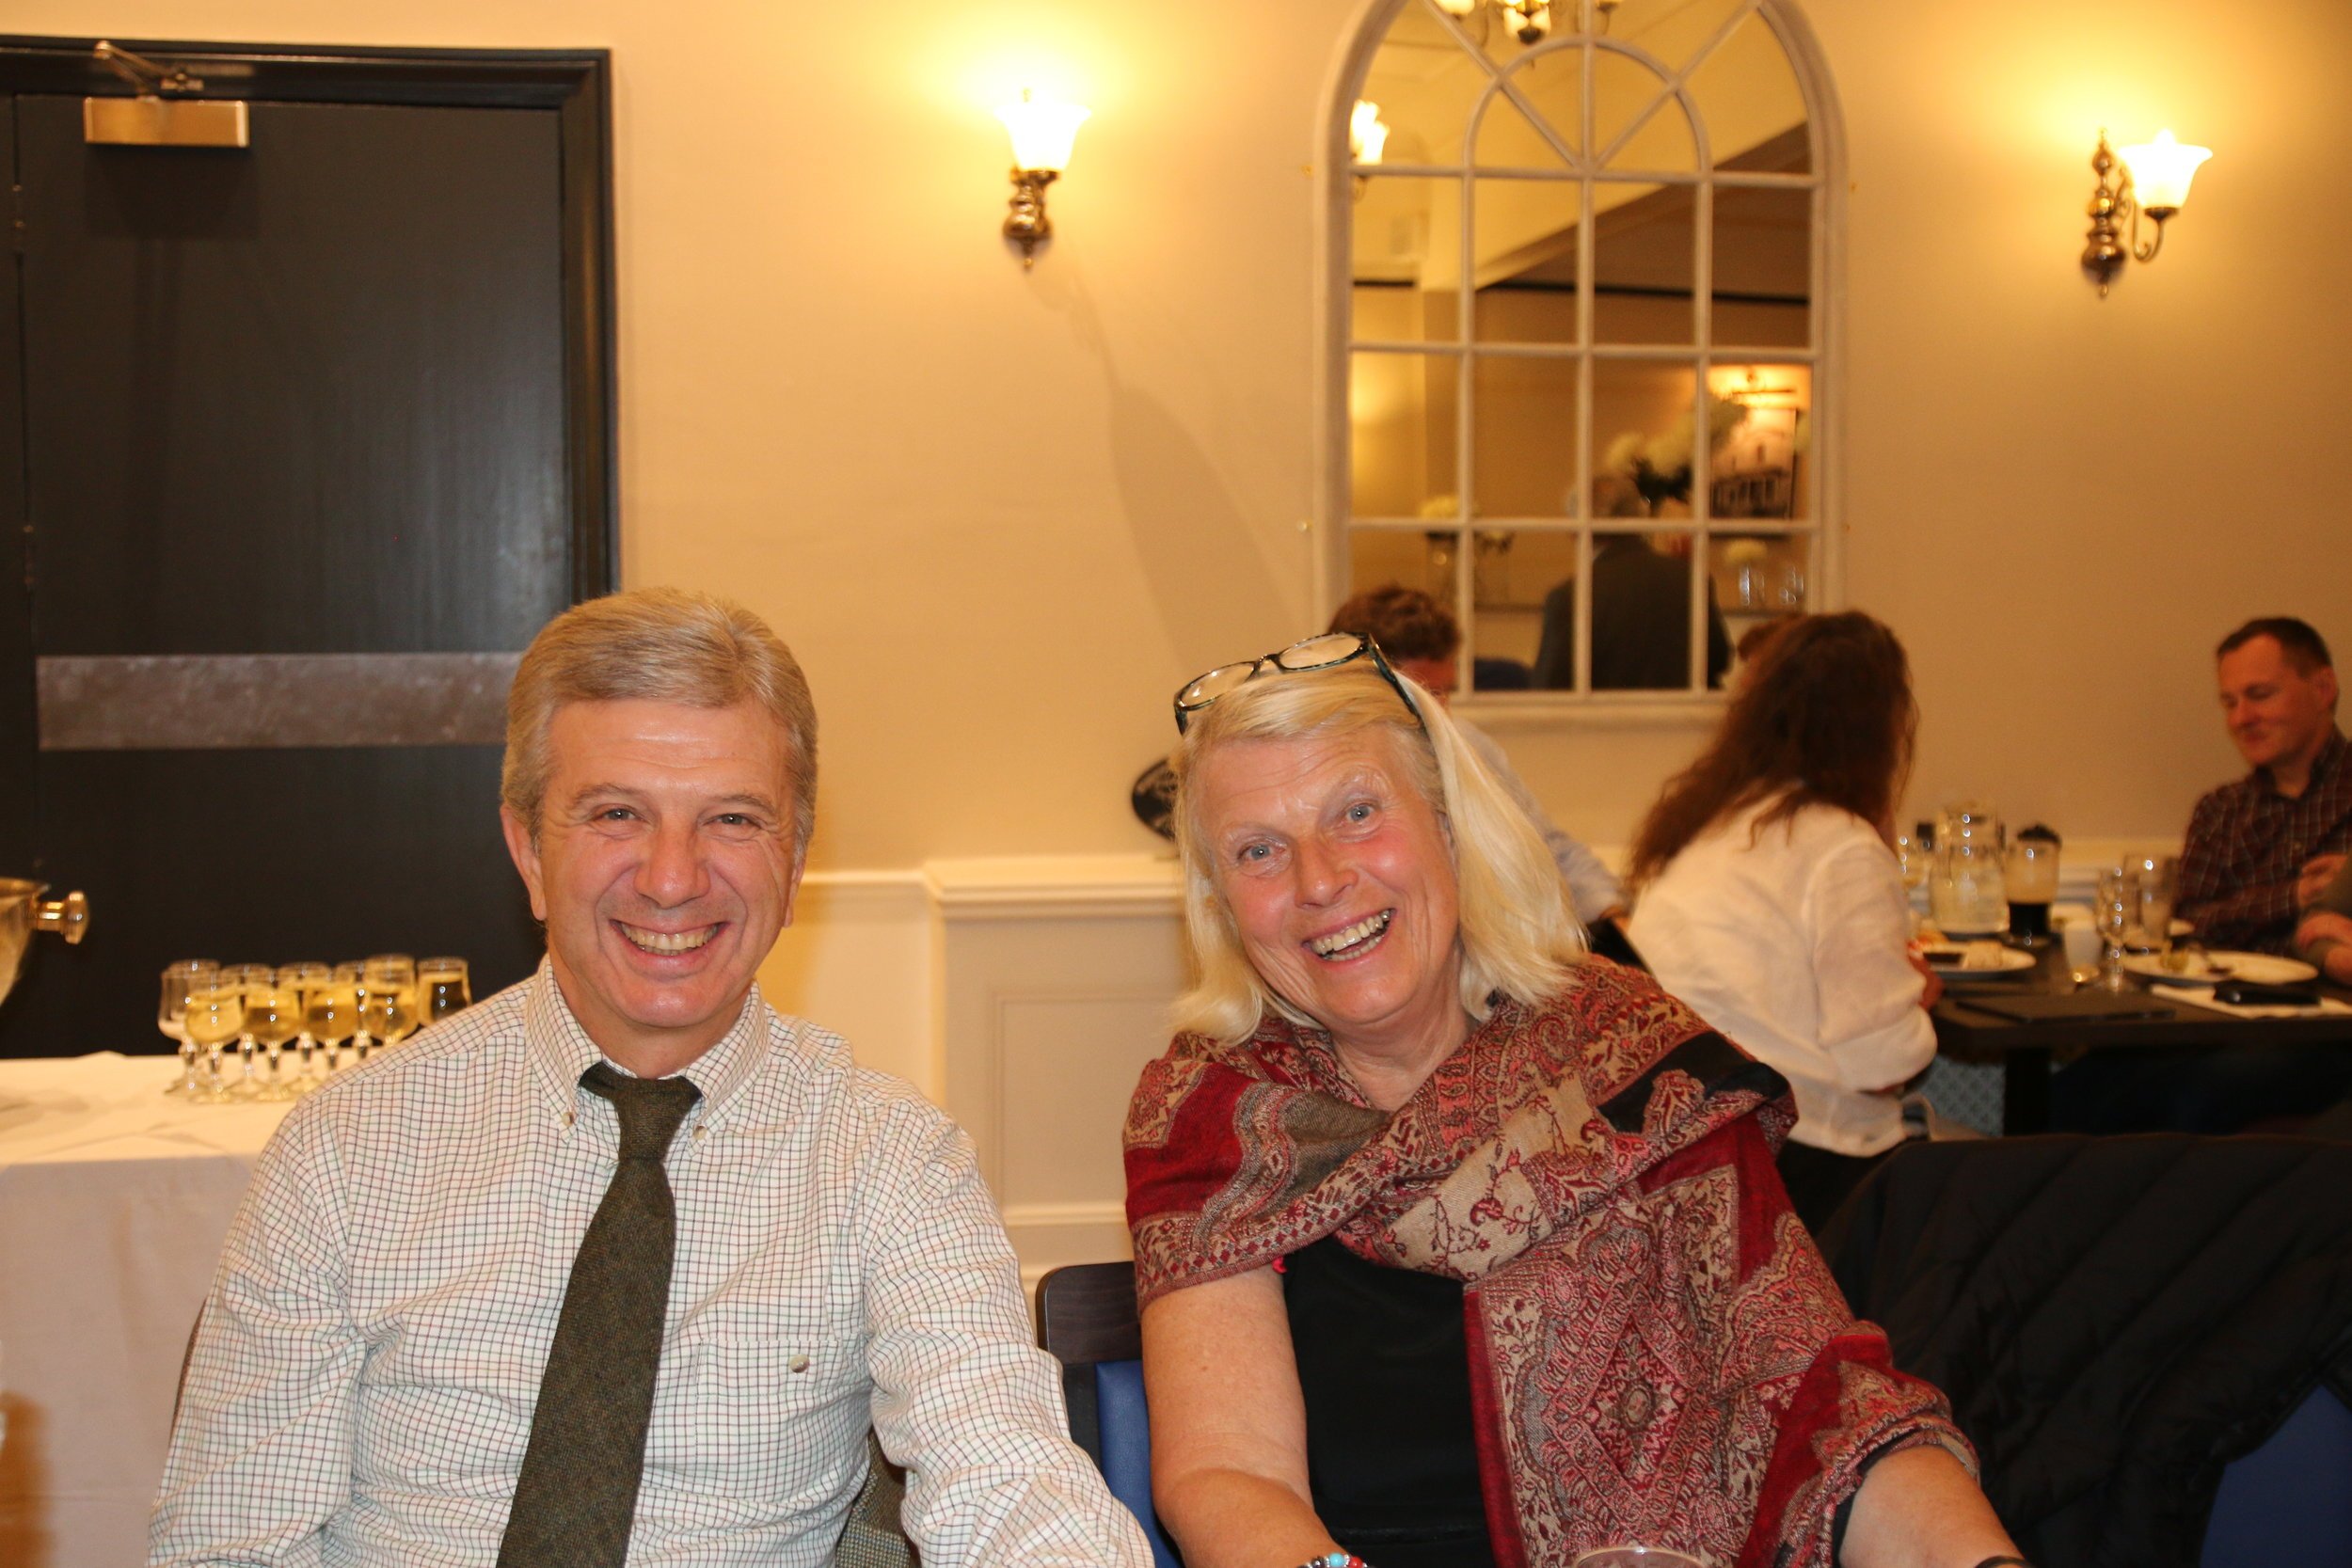 Kristin Jameson and IIRSC Secretary Cesare M. Valvo enjoying the evening after a trial